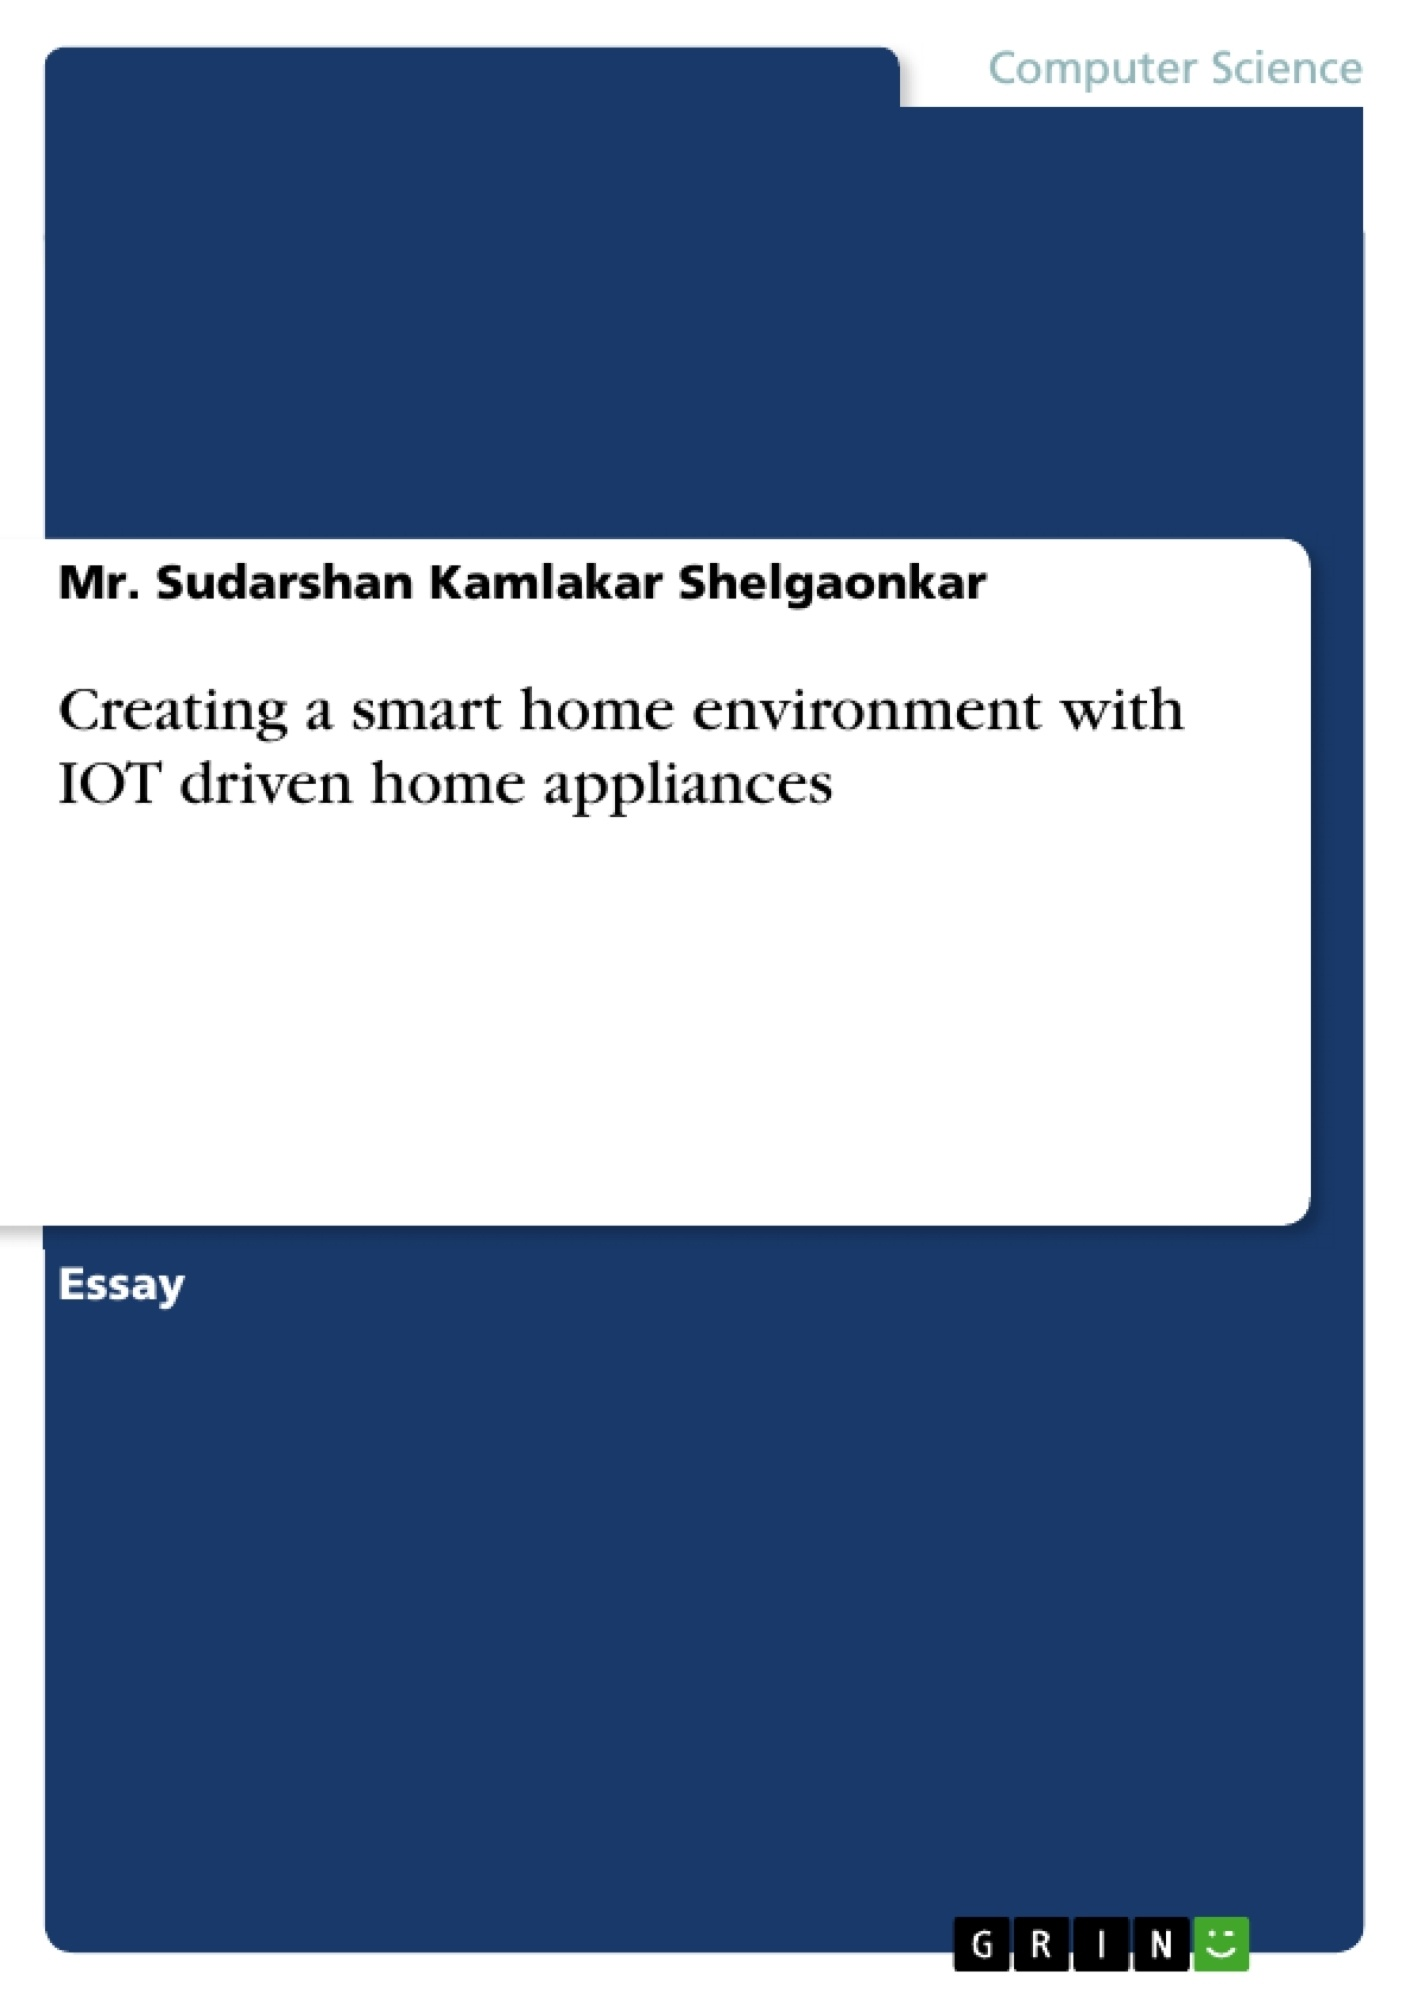 Title: Creating a smart home environment with IOT driven home appliances